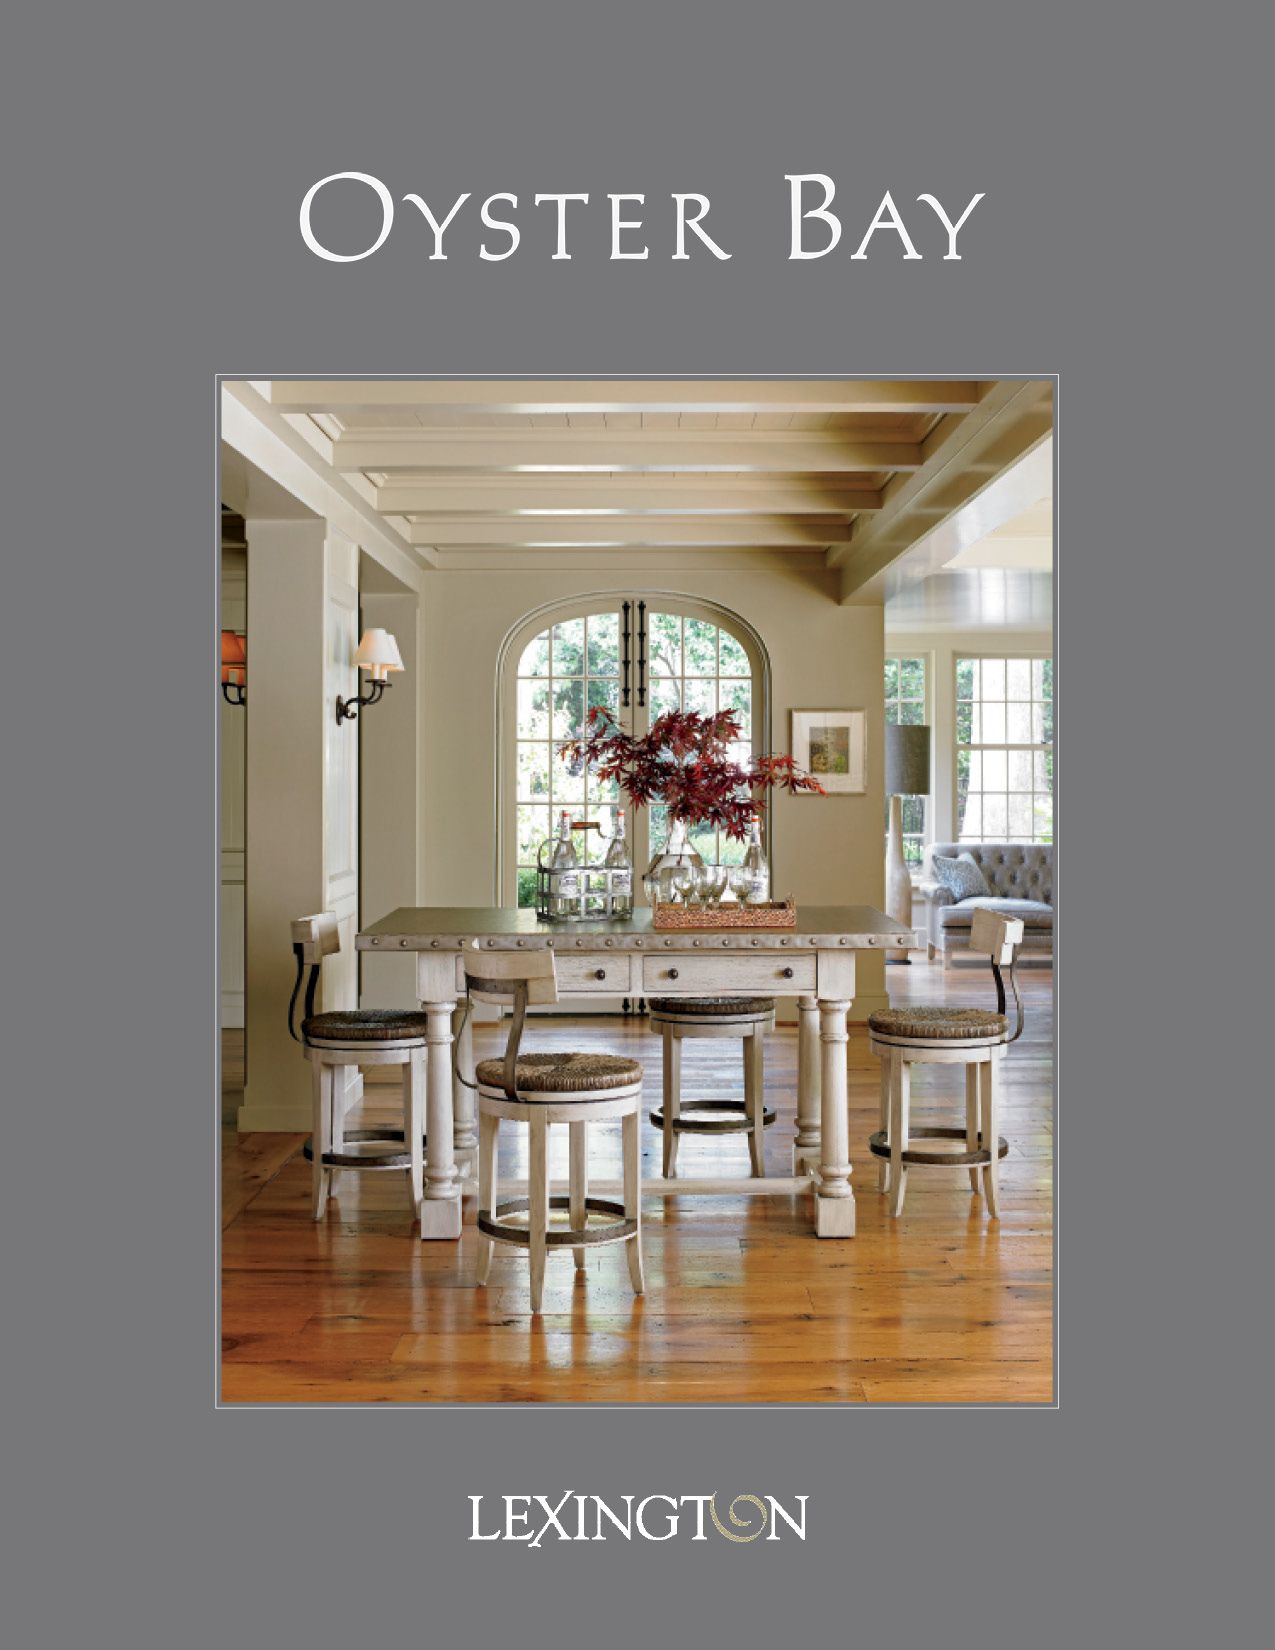 Oyster Bay